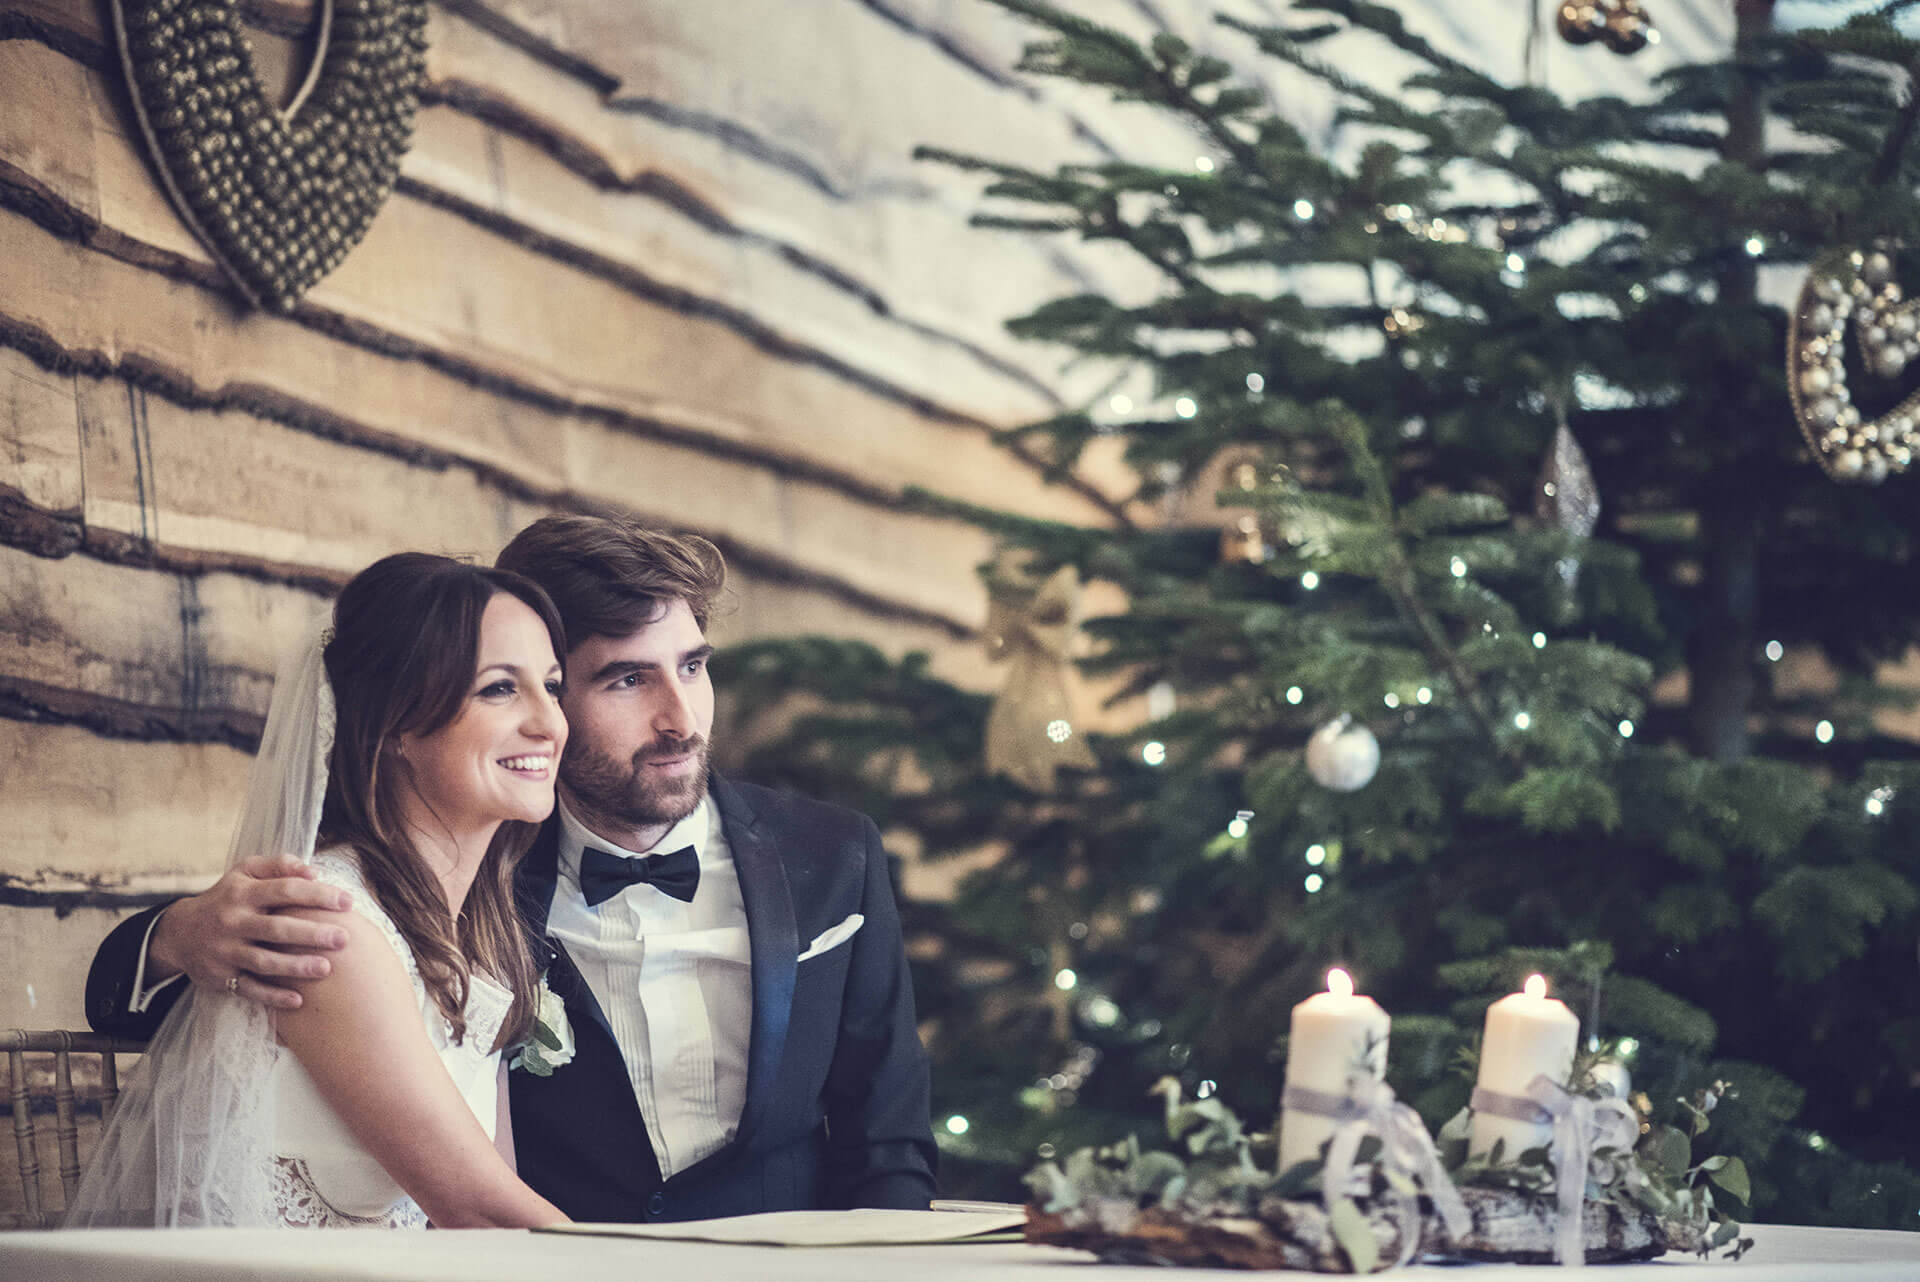 "We loved how Sarah & Matt transformed the barn into their own winter wonderland. Photography courtesy of Ben Robinson <a href=""http://www.thomasthomasphotography.co.uk/"" target=""_blank"">http://www.thomasthomasphotography.co.uk/</a>"